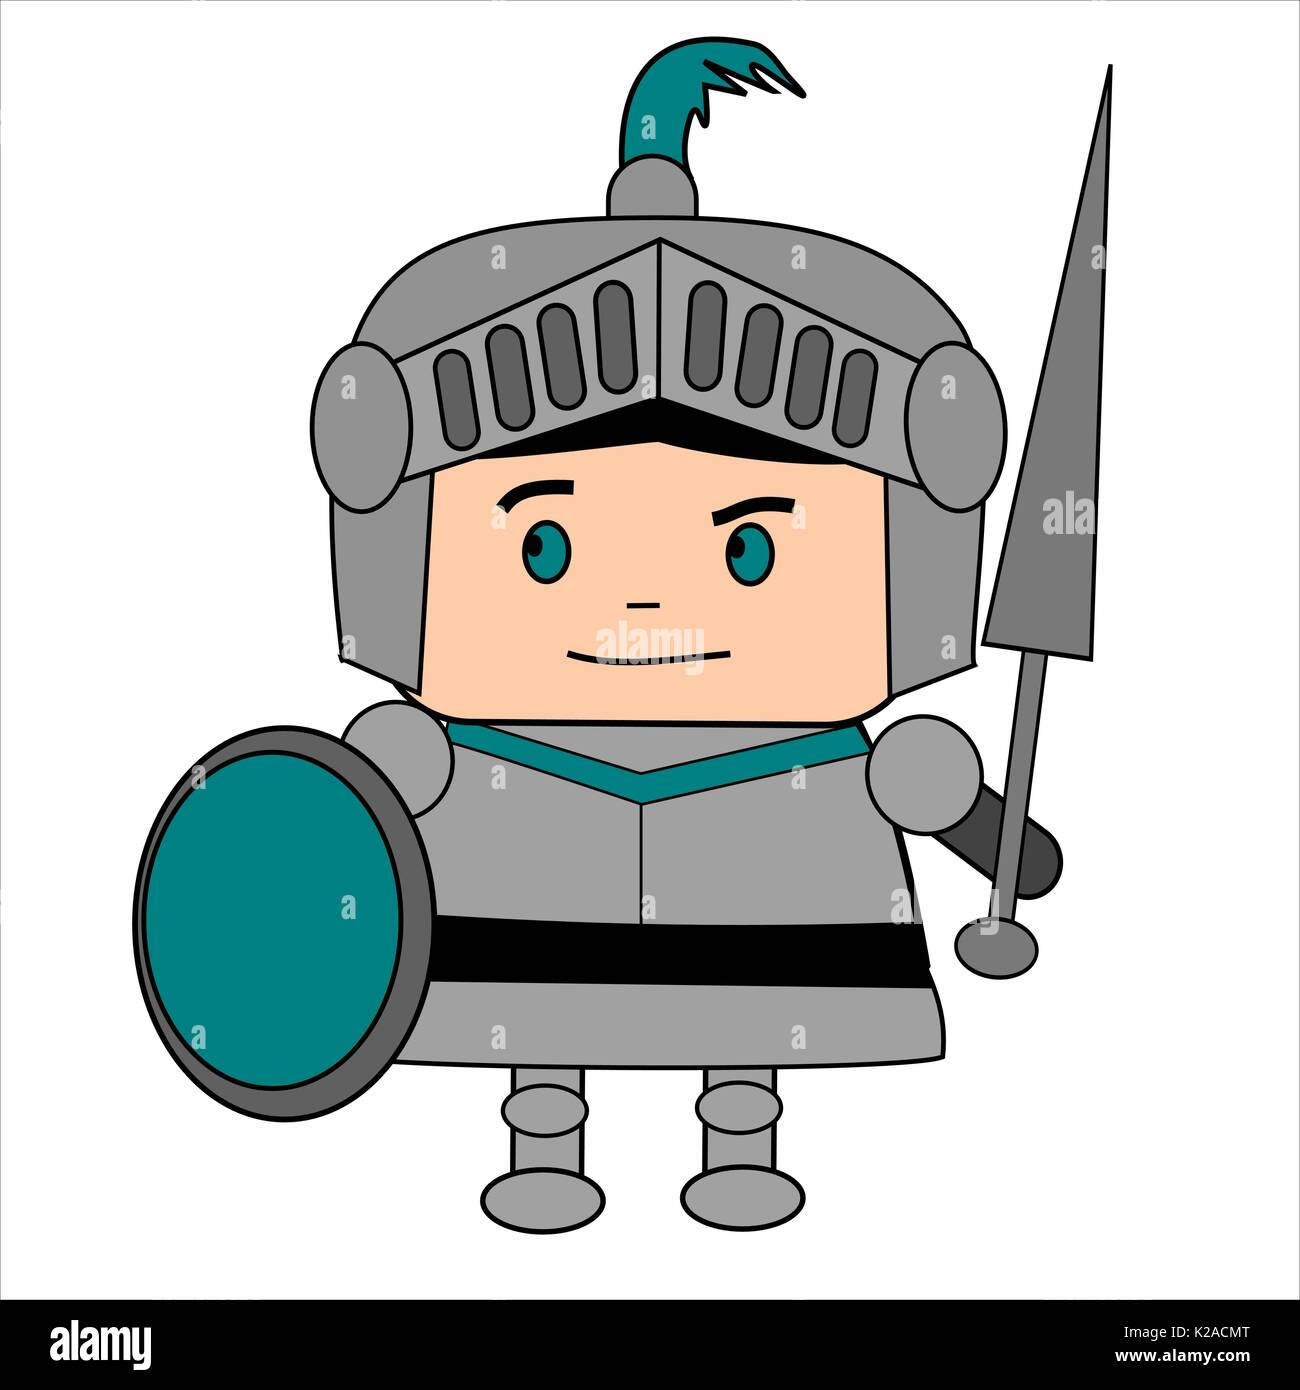 Cartoon medieval knight in suit of armor, with helmet, lance and shield. - Stock Image